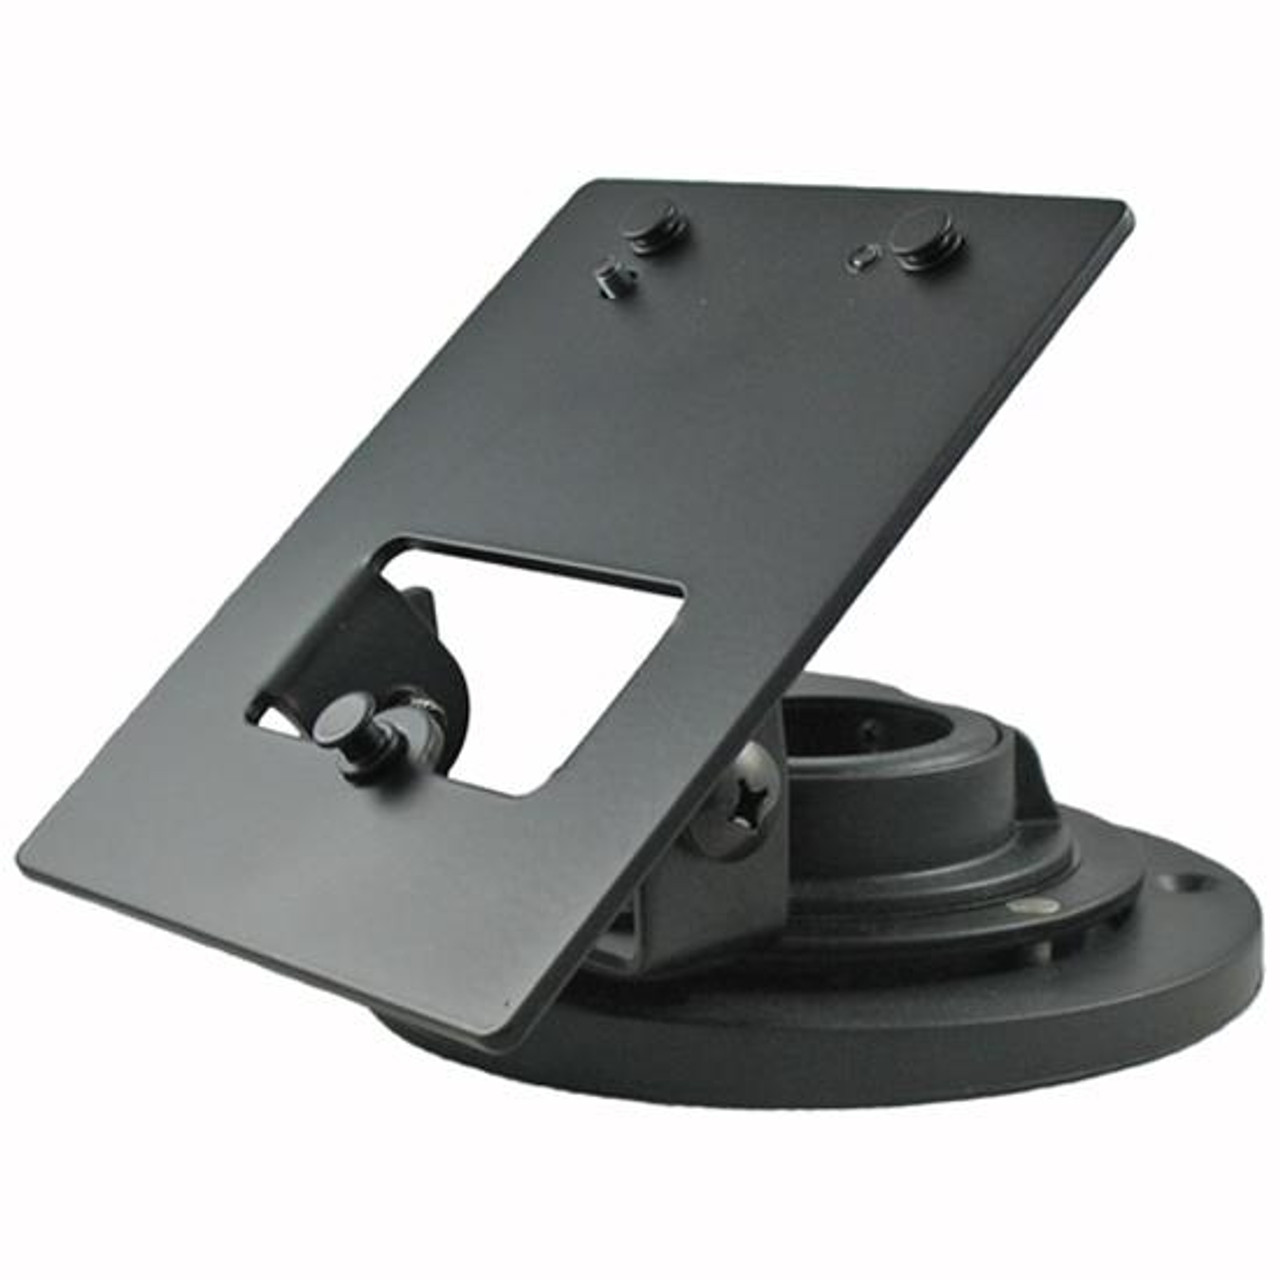 Swivel Stands Credit Card Stand Low Profile Ingenico iSC350 or iSC480